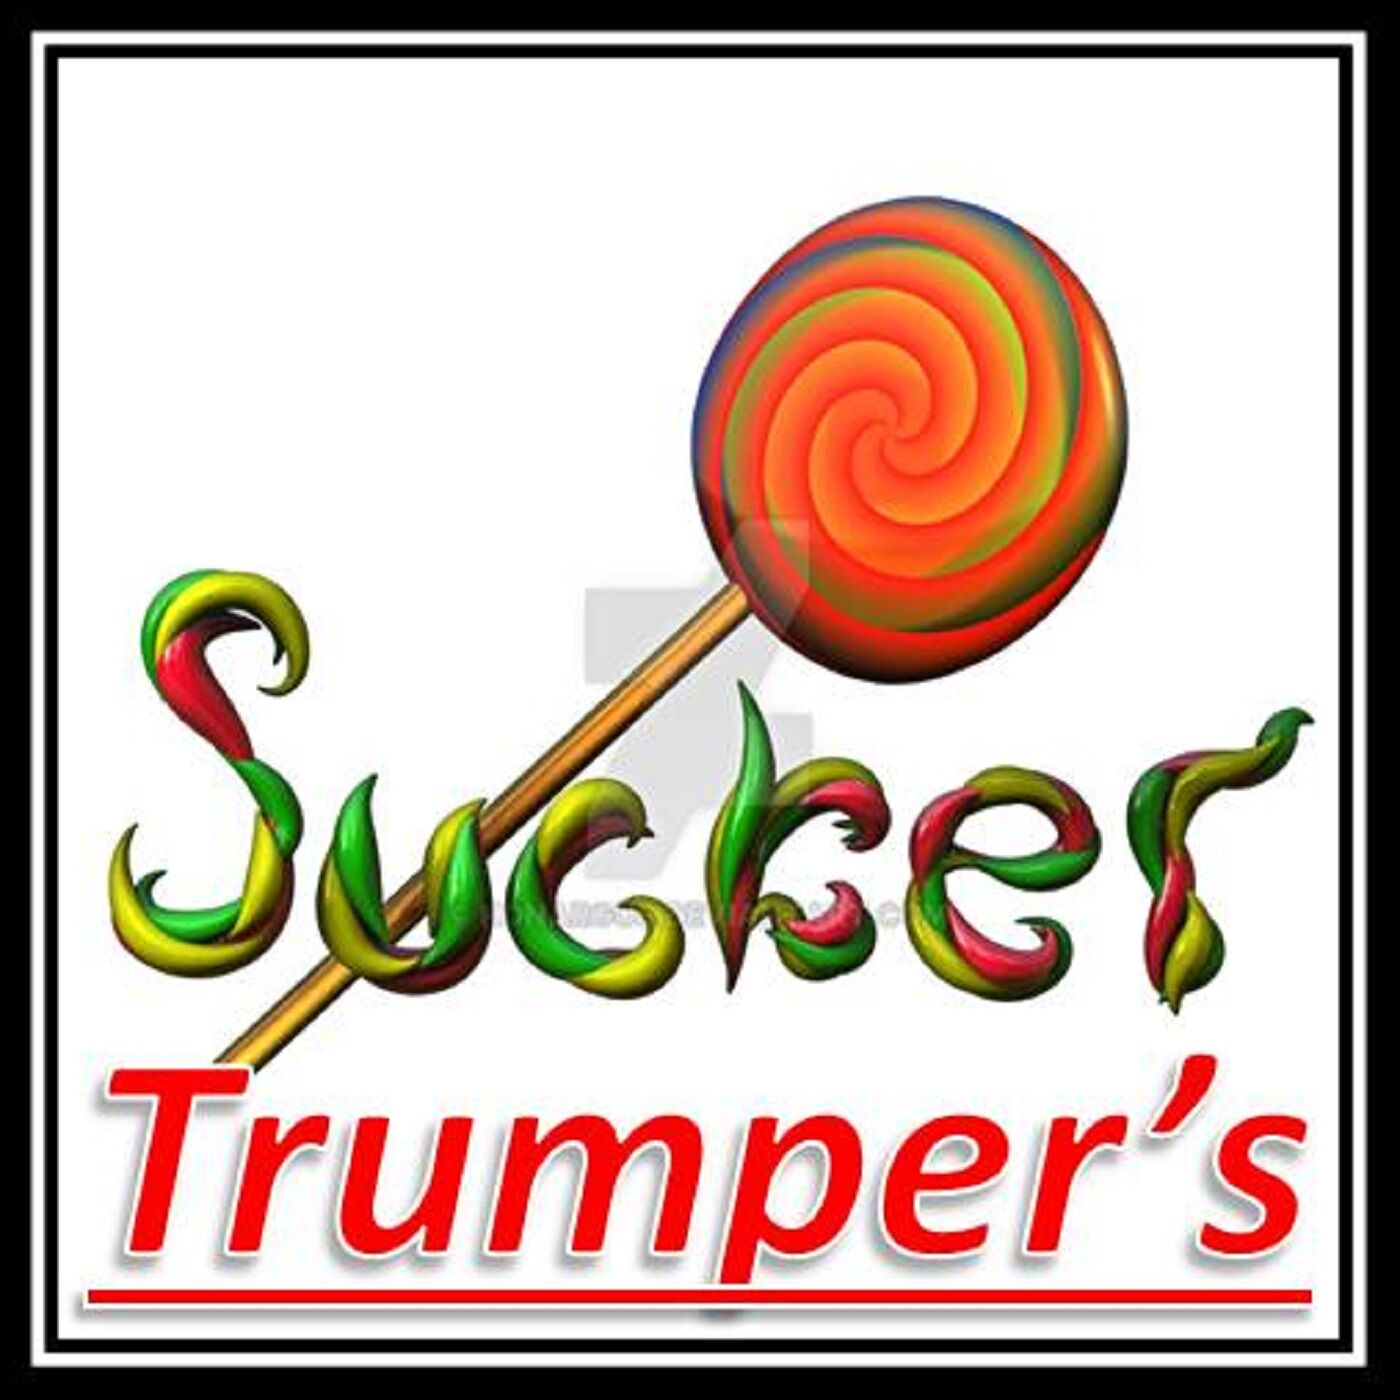 Sucker and Losers are trumpers! Keep doing what the Clown trump says! @realdonaldtrump